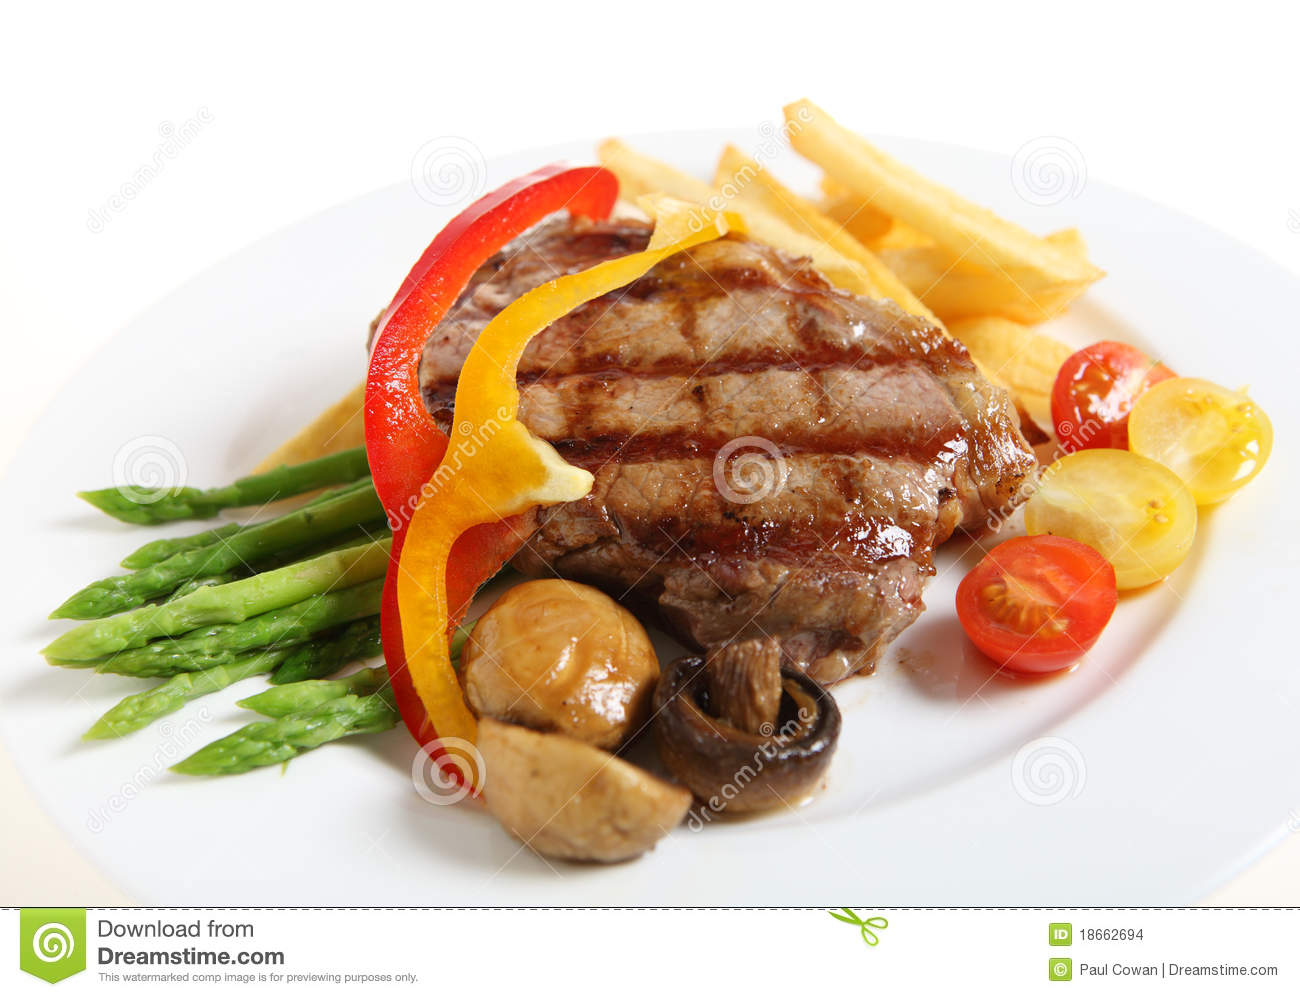 Veal sirloin steak meal horizontal